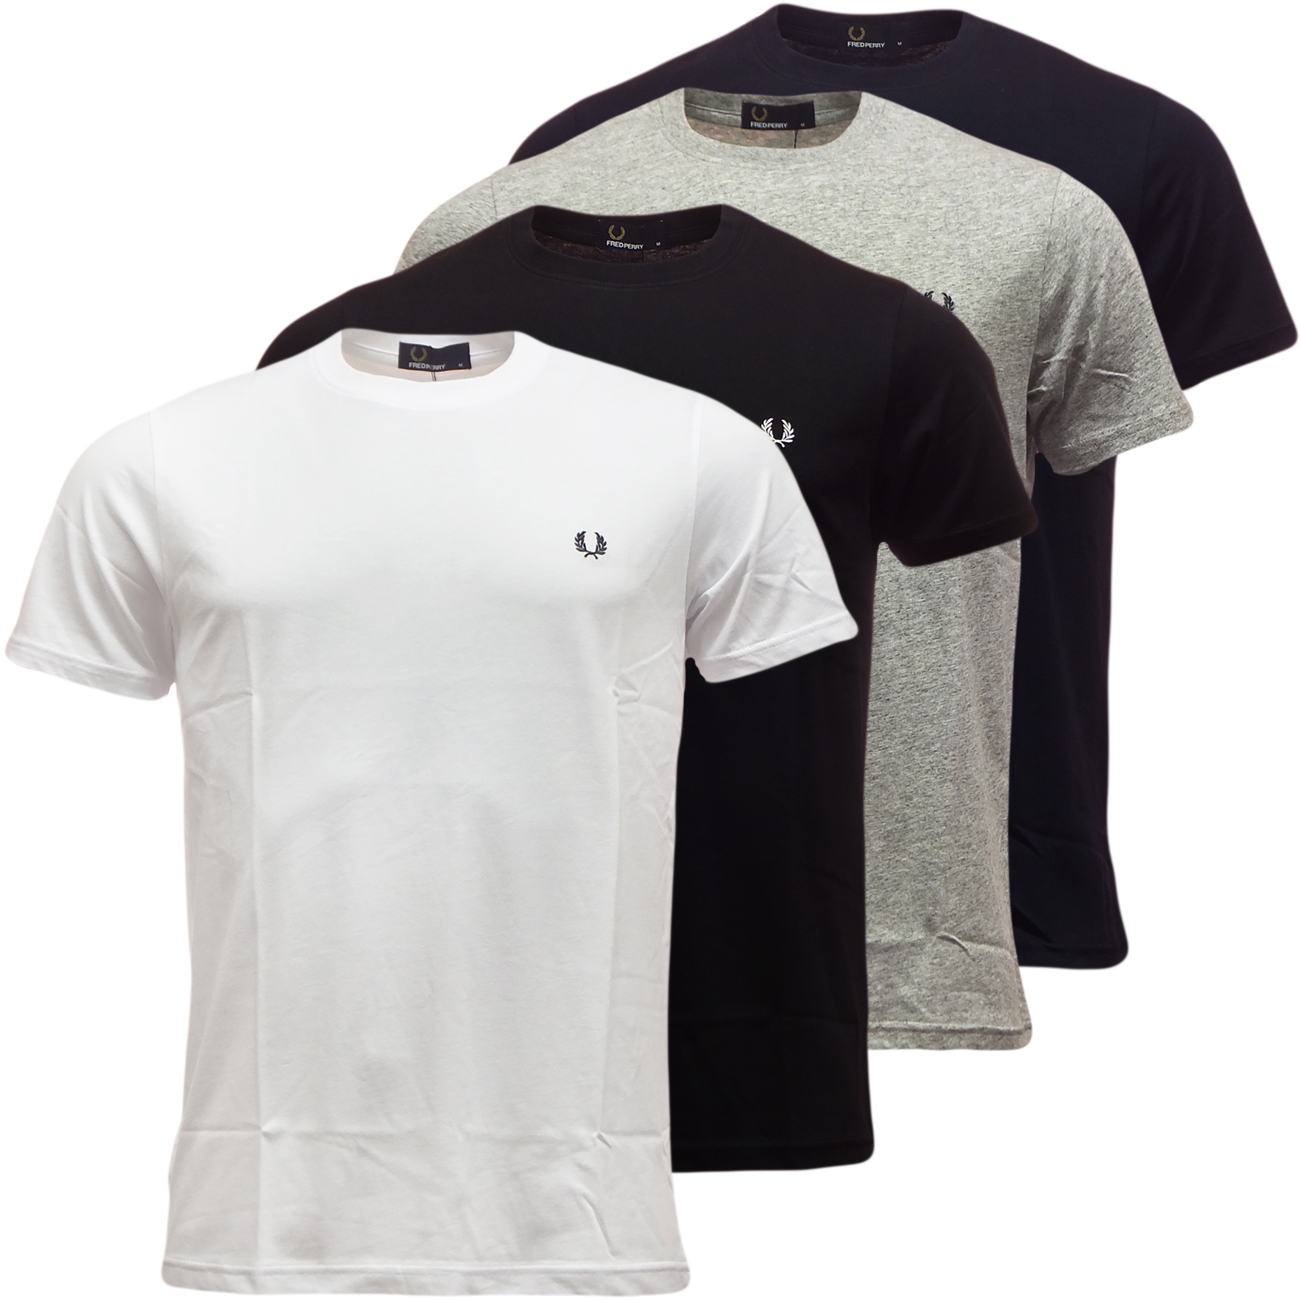 Fred Perry Crew Neck T-Shirt Plain Round Neck Mens Top Black or White All Sizes